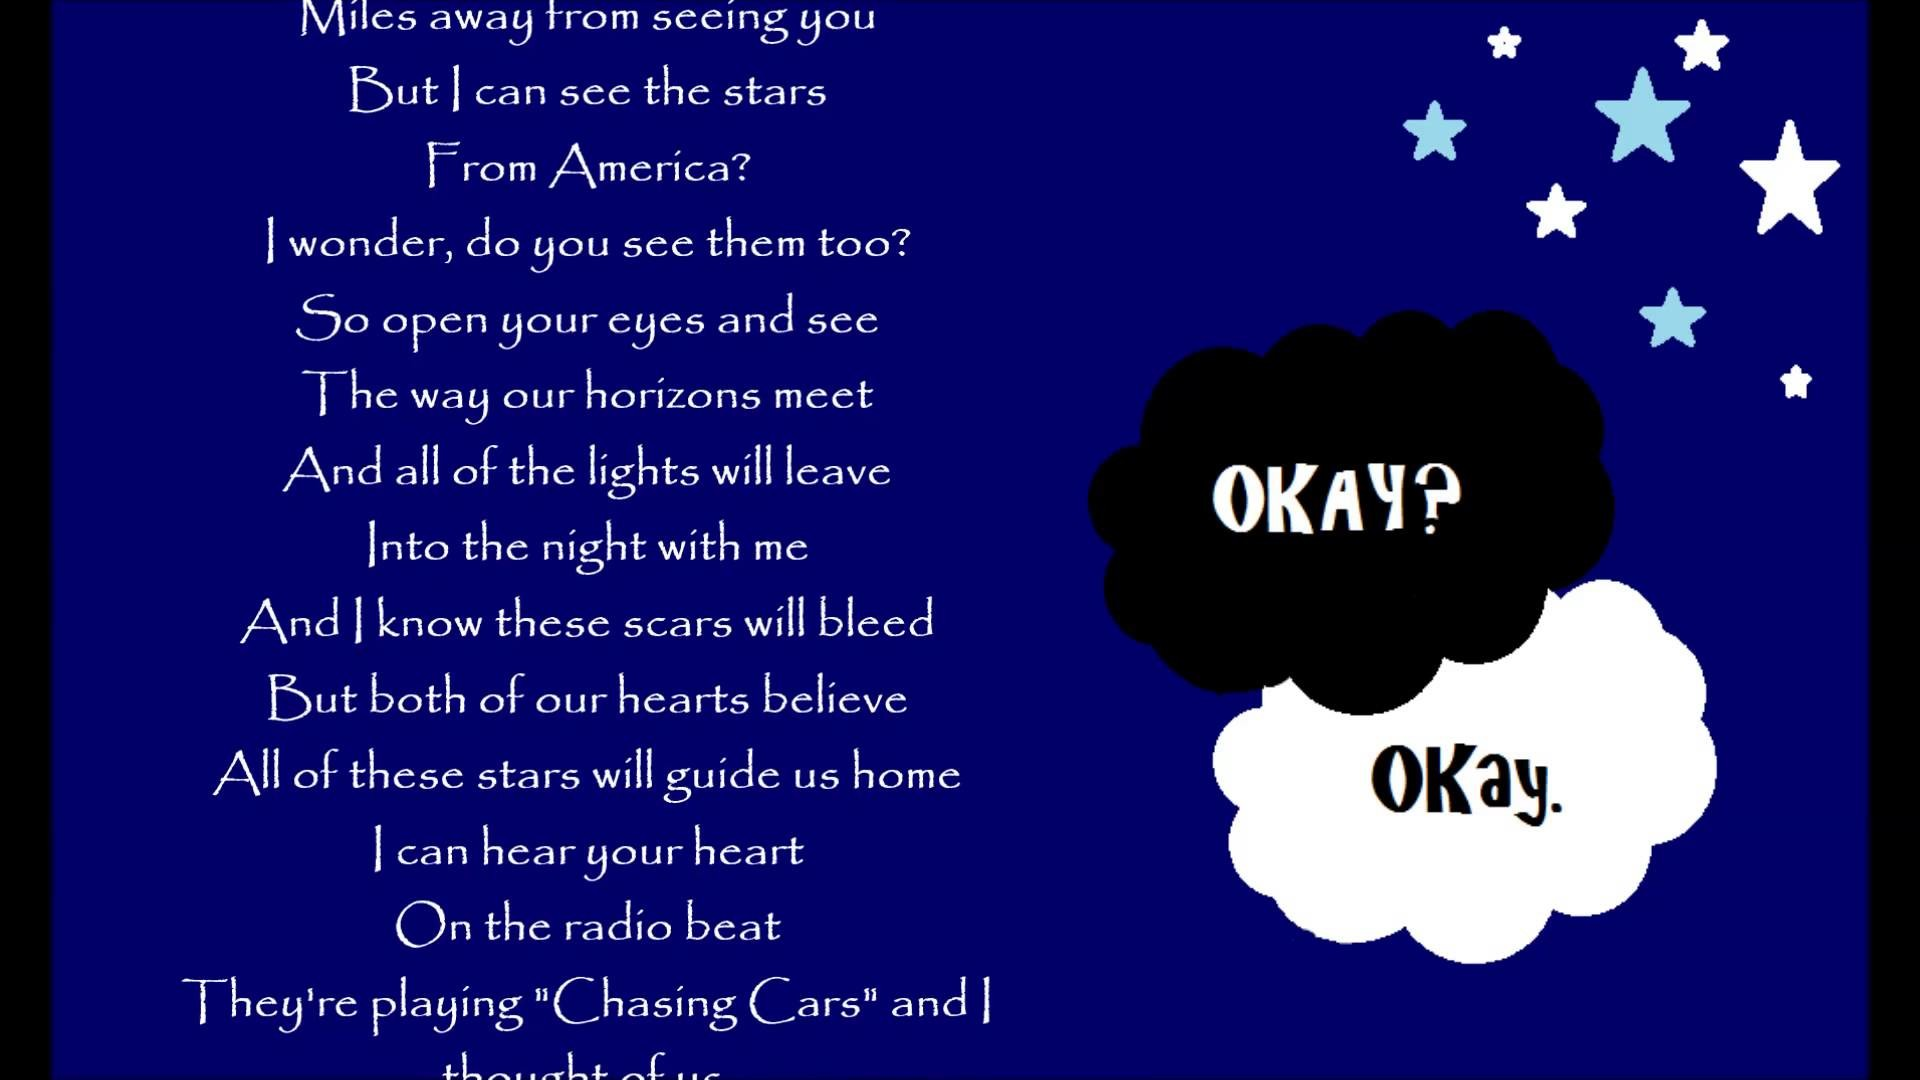 All Of These Stars ~Ed Sheeran Lyrics